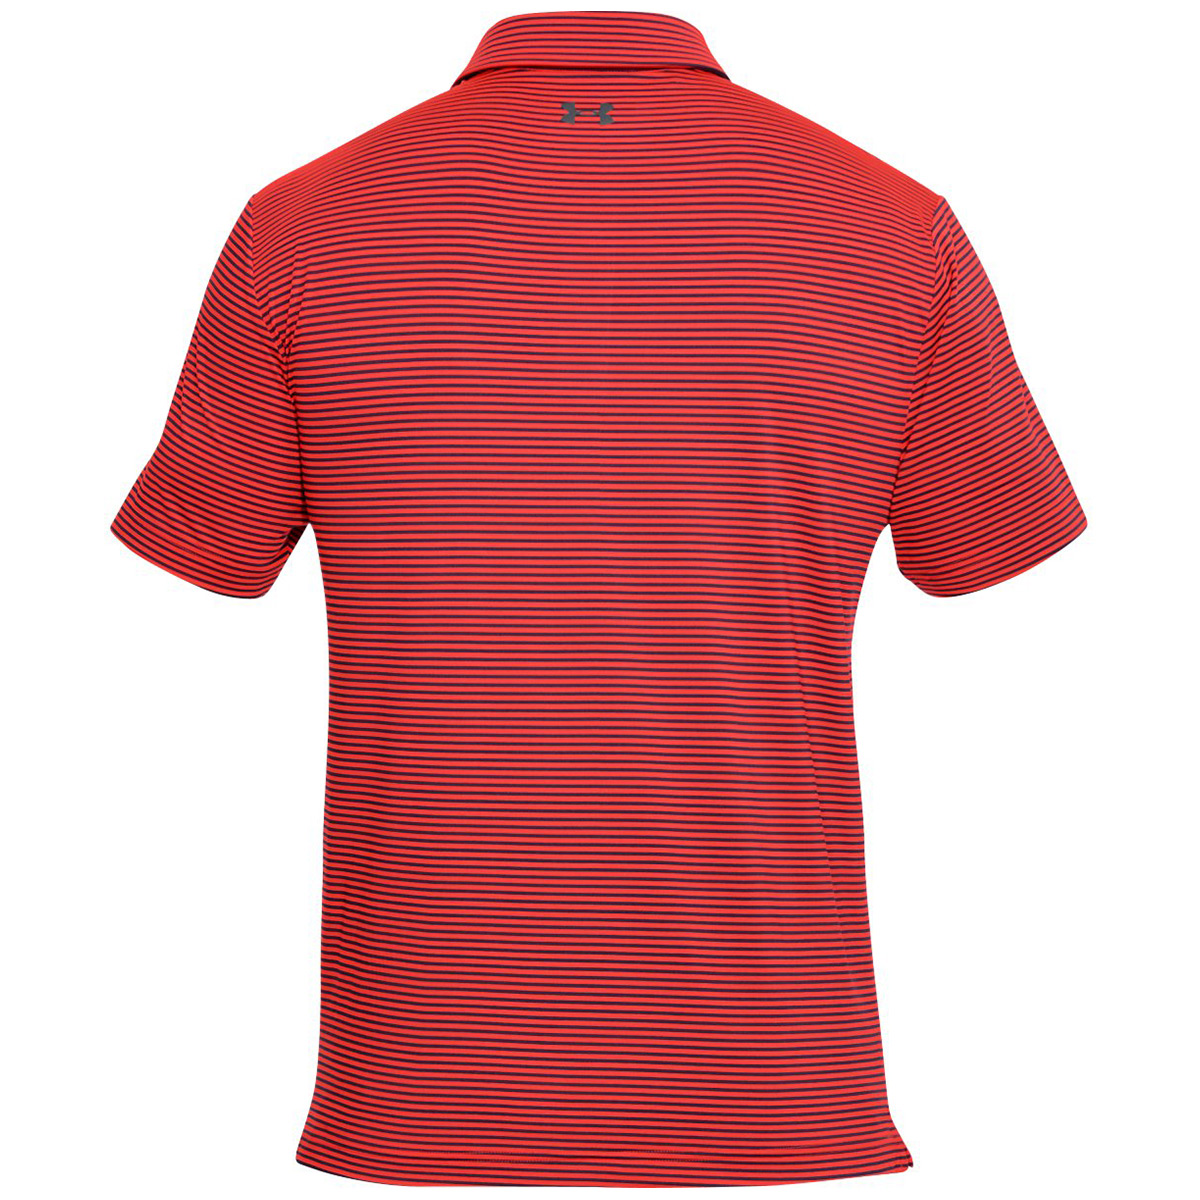 Under-Armour-Mens-UA-Playoff-Performance-Golf-Polo-Shirt-42-OFF-RRP thumbnail 34